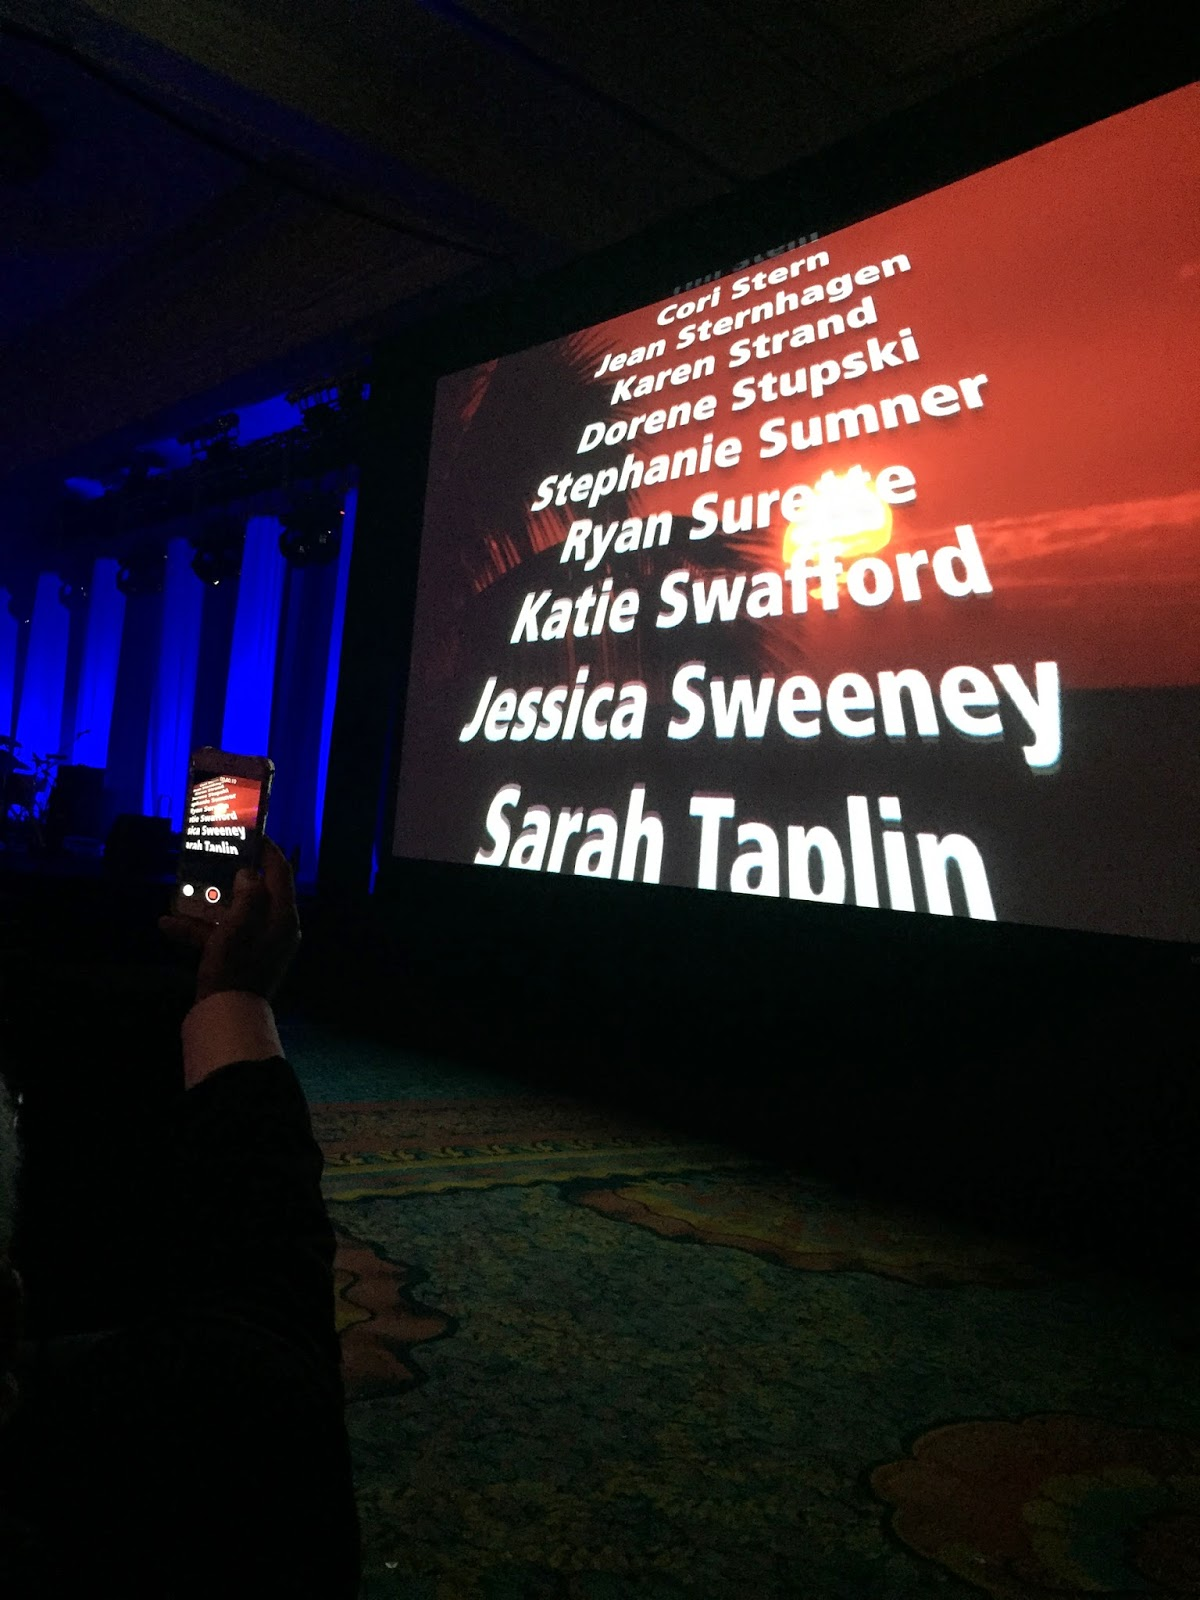 My Name On Screen